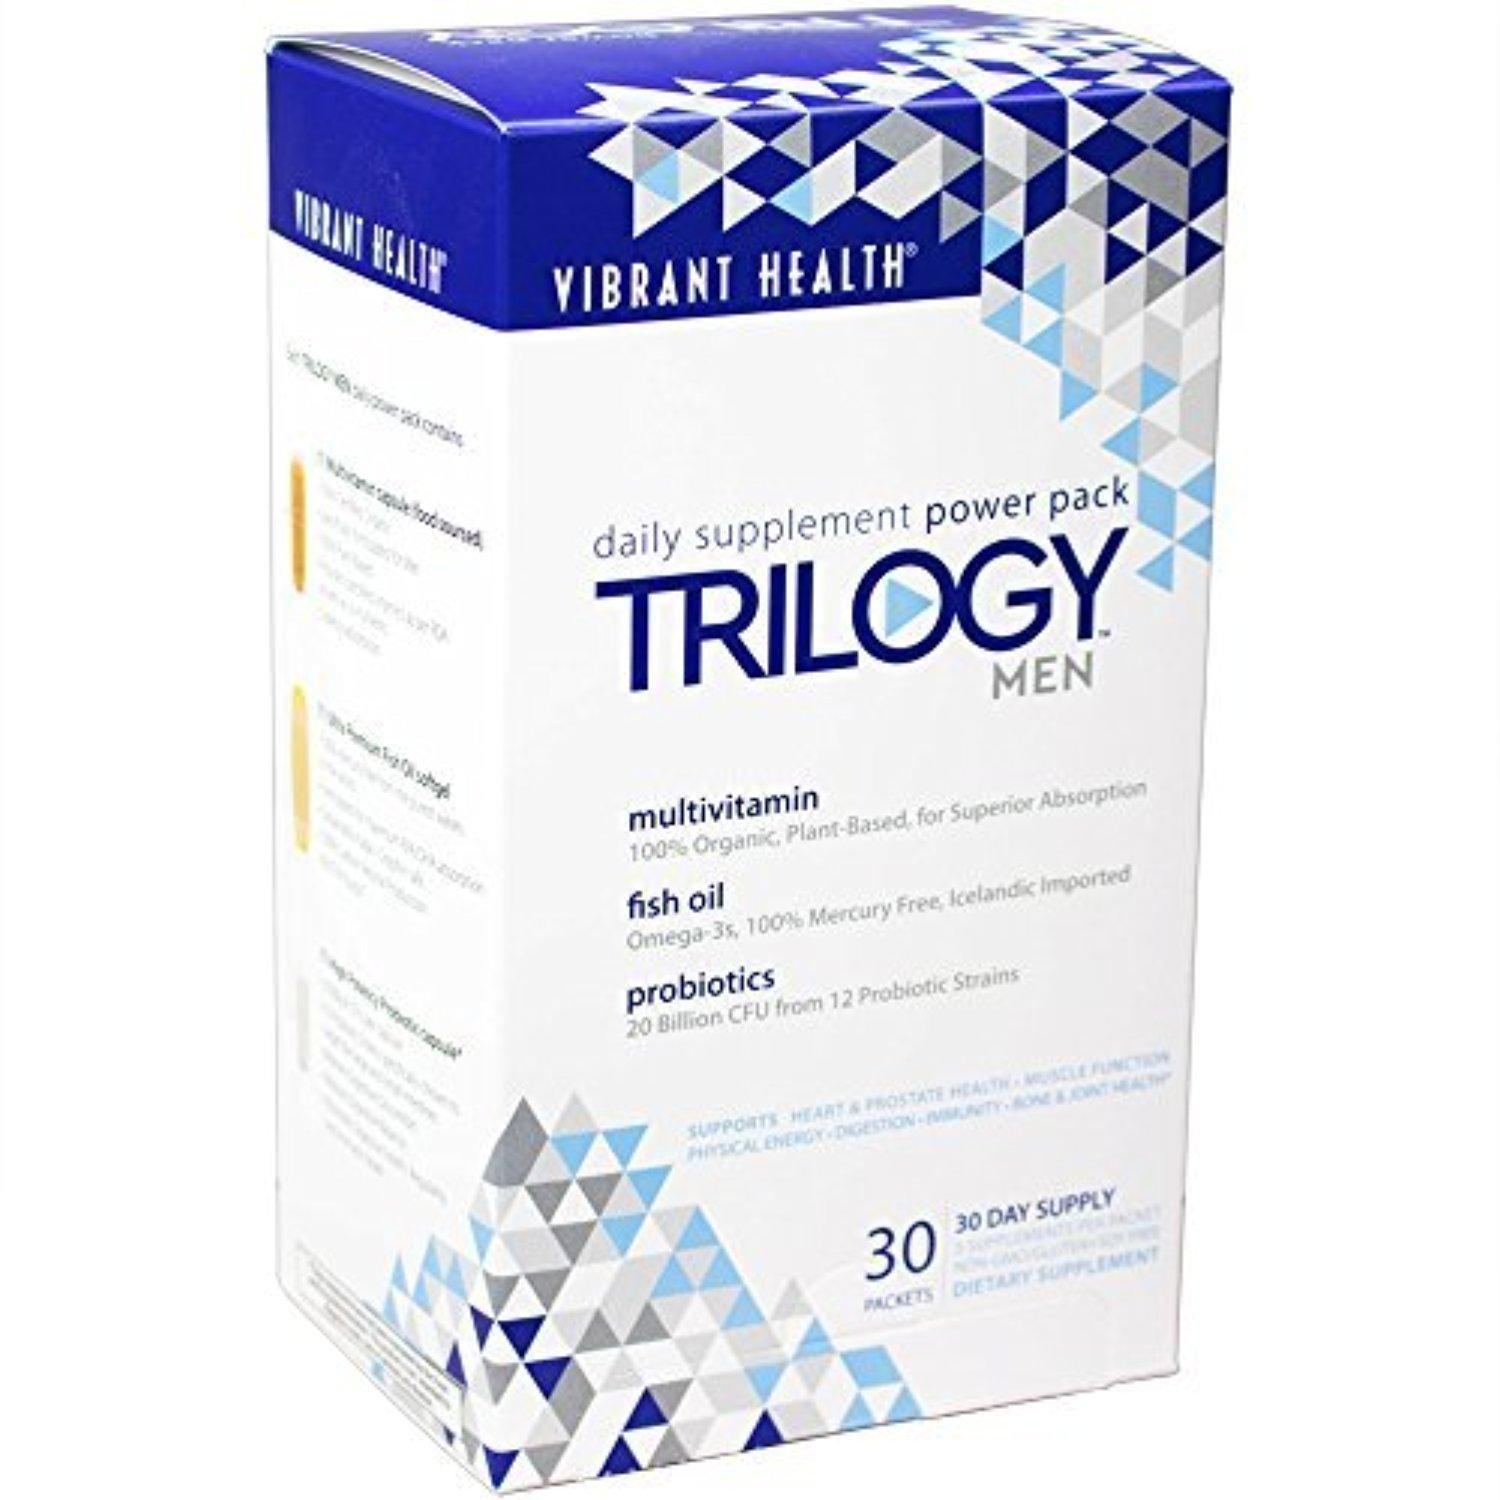 Trilogy Men - Daily Supplement Power Pack, 30 day supply by Vibrant Health